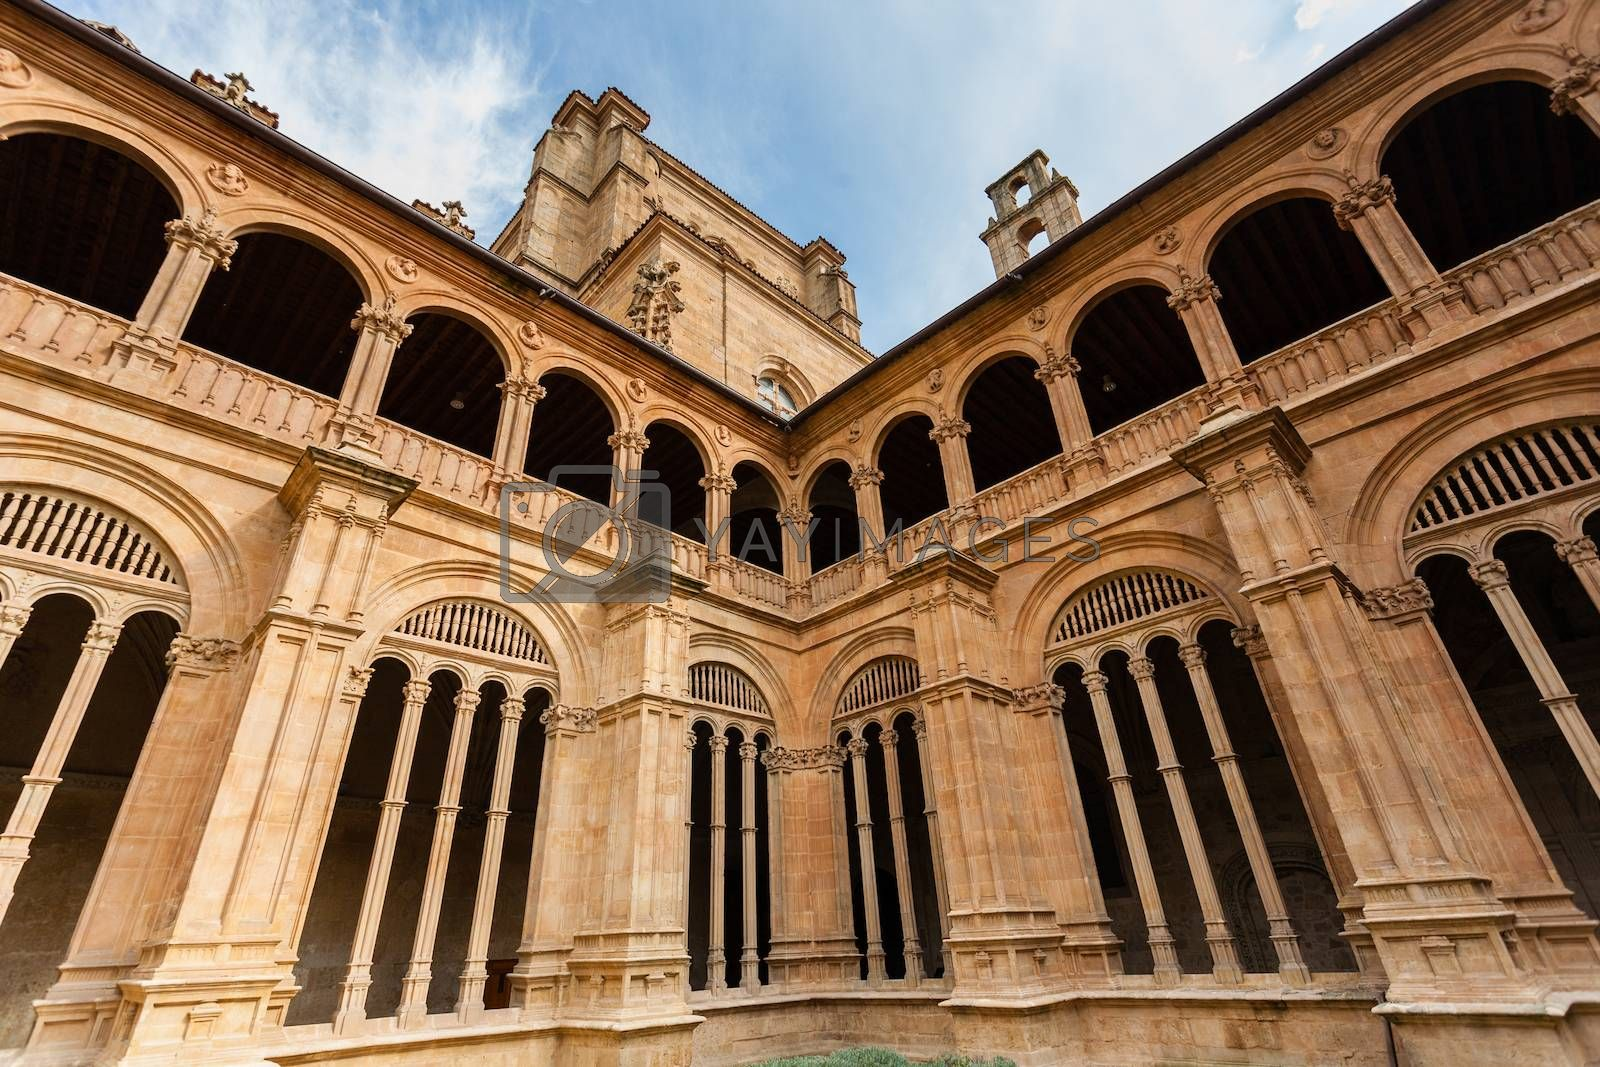 View of archery in San Esteban convent cloister in Salamanca by imagsan